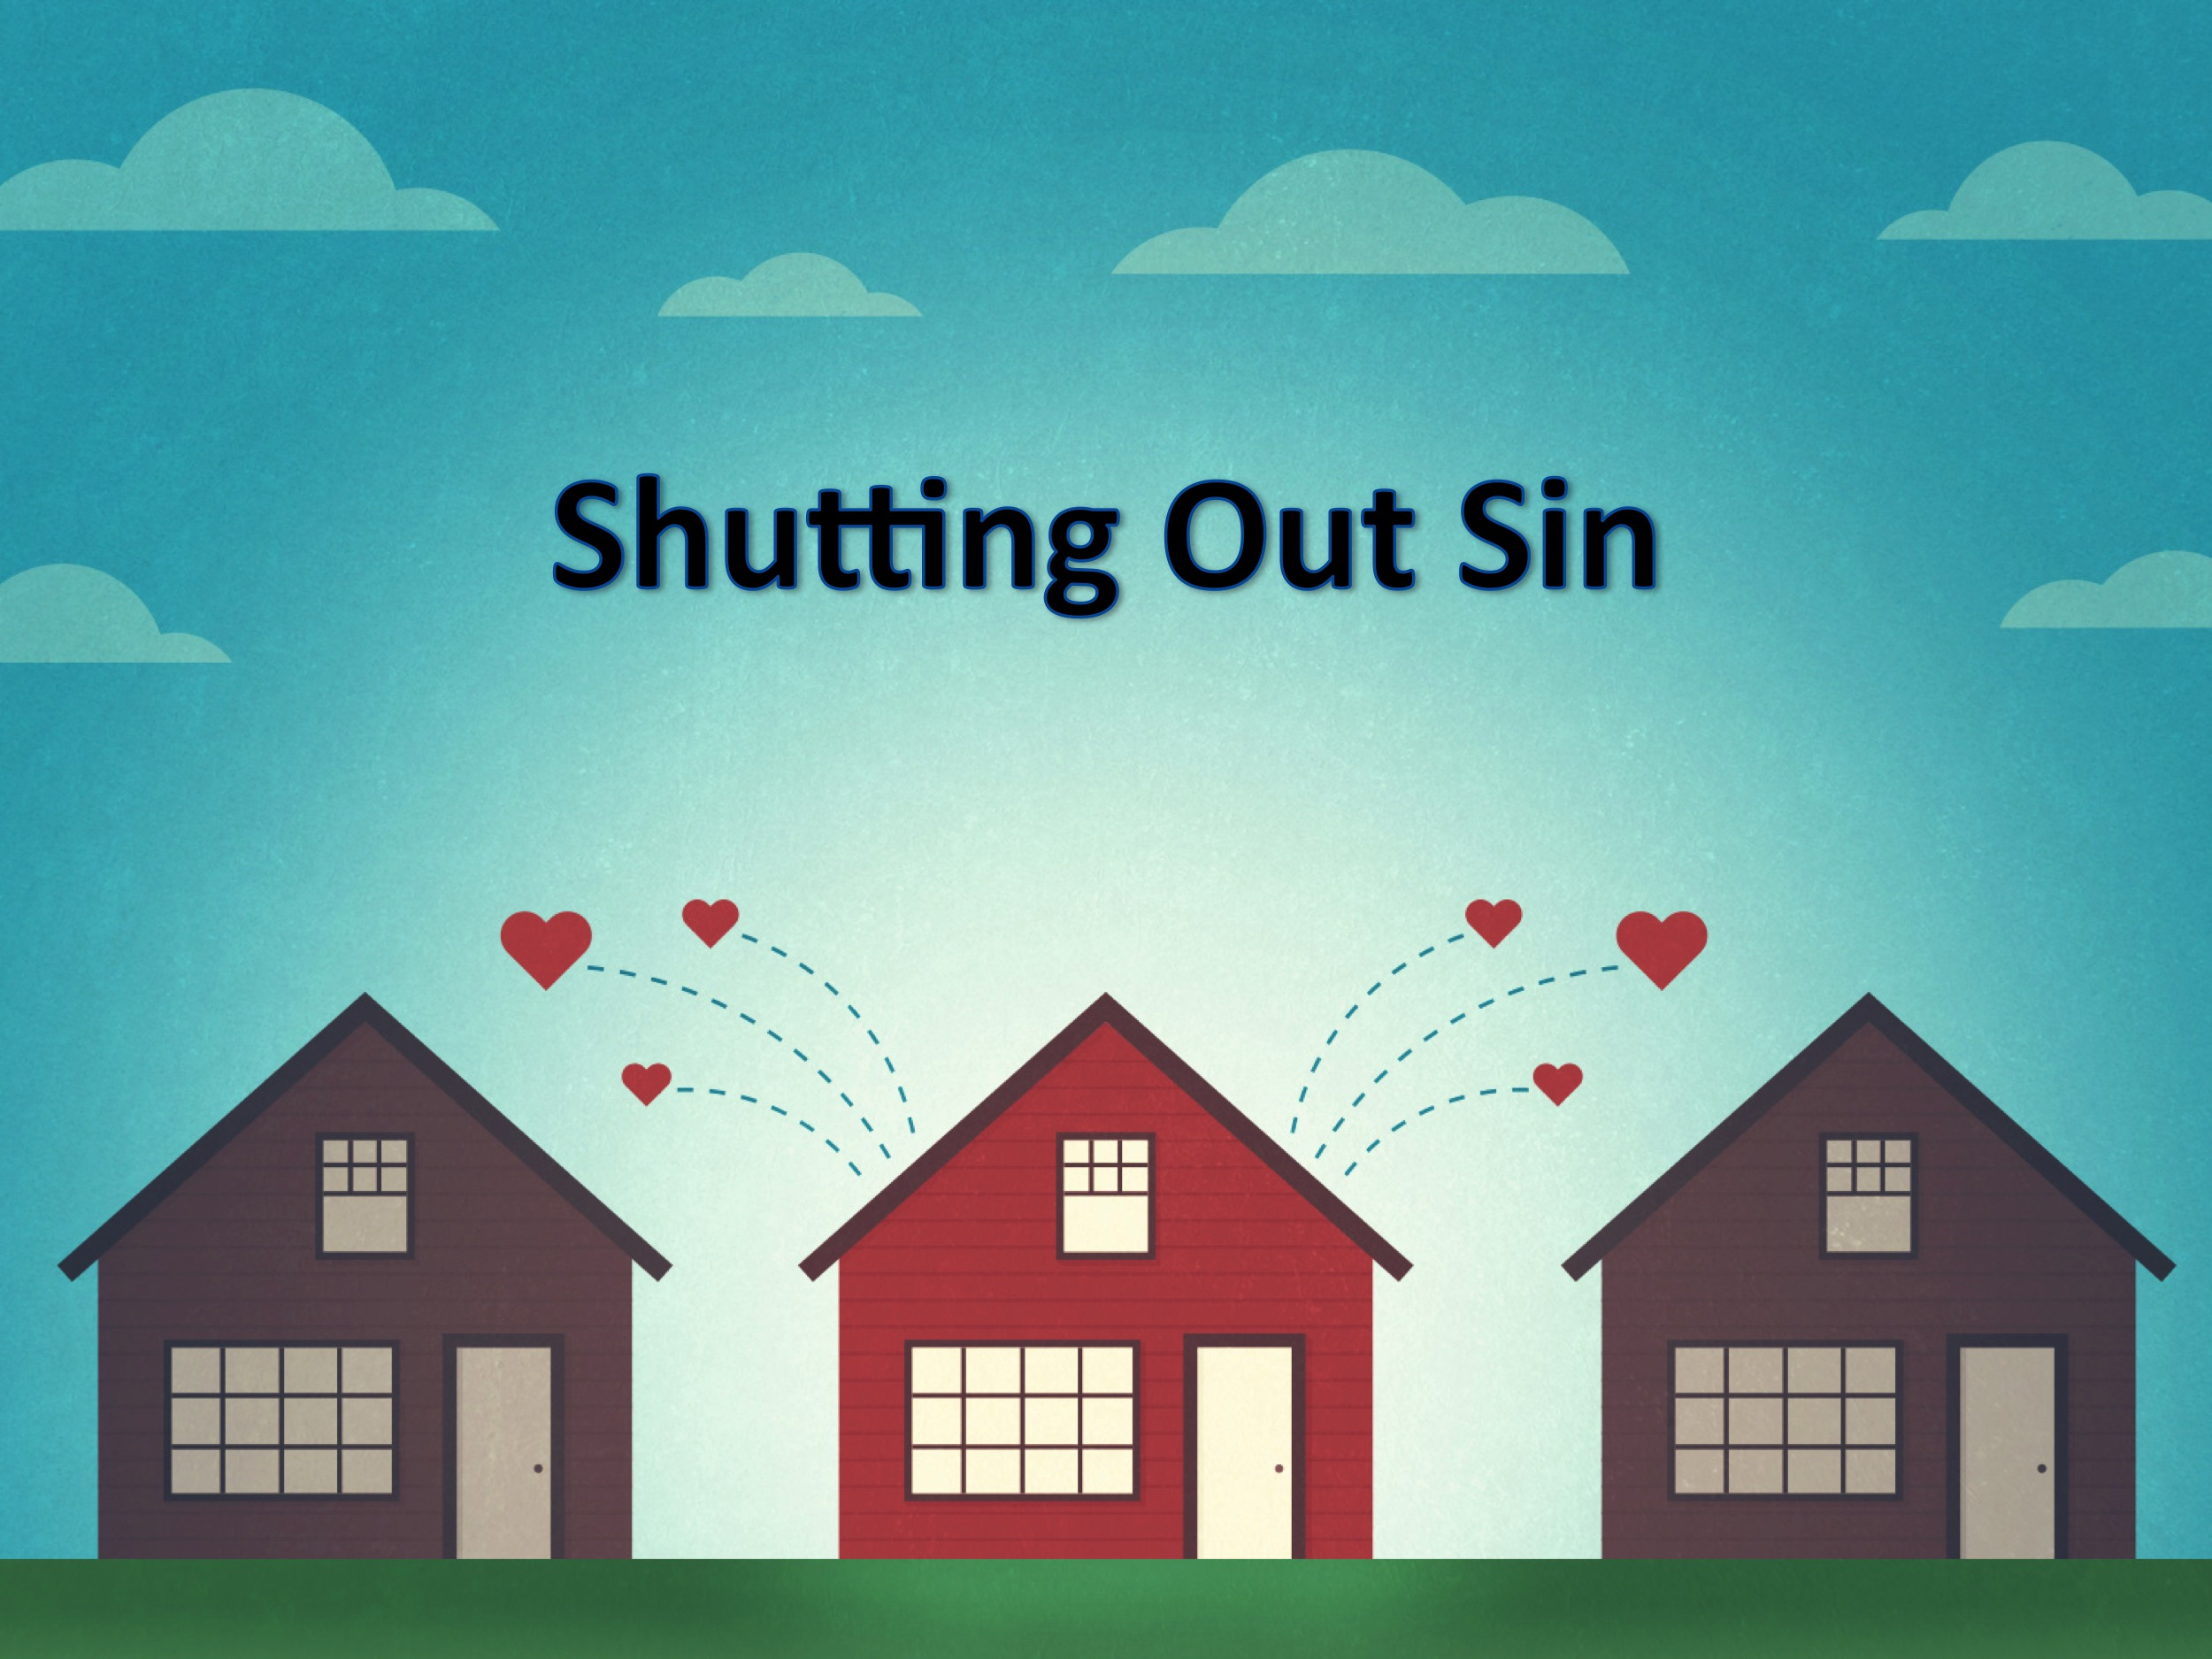 Shutting Out Sin P1 7/20/2017 8:32:54 AM